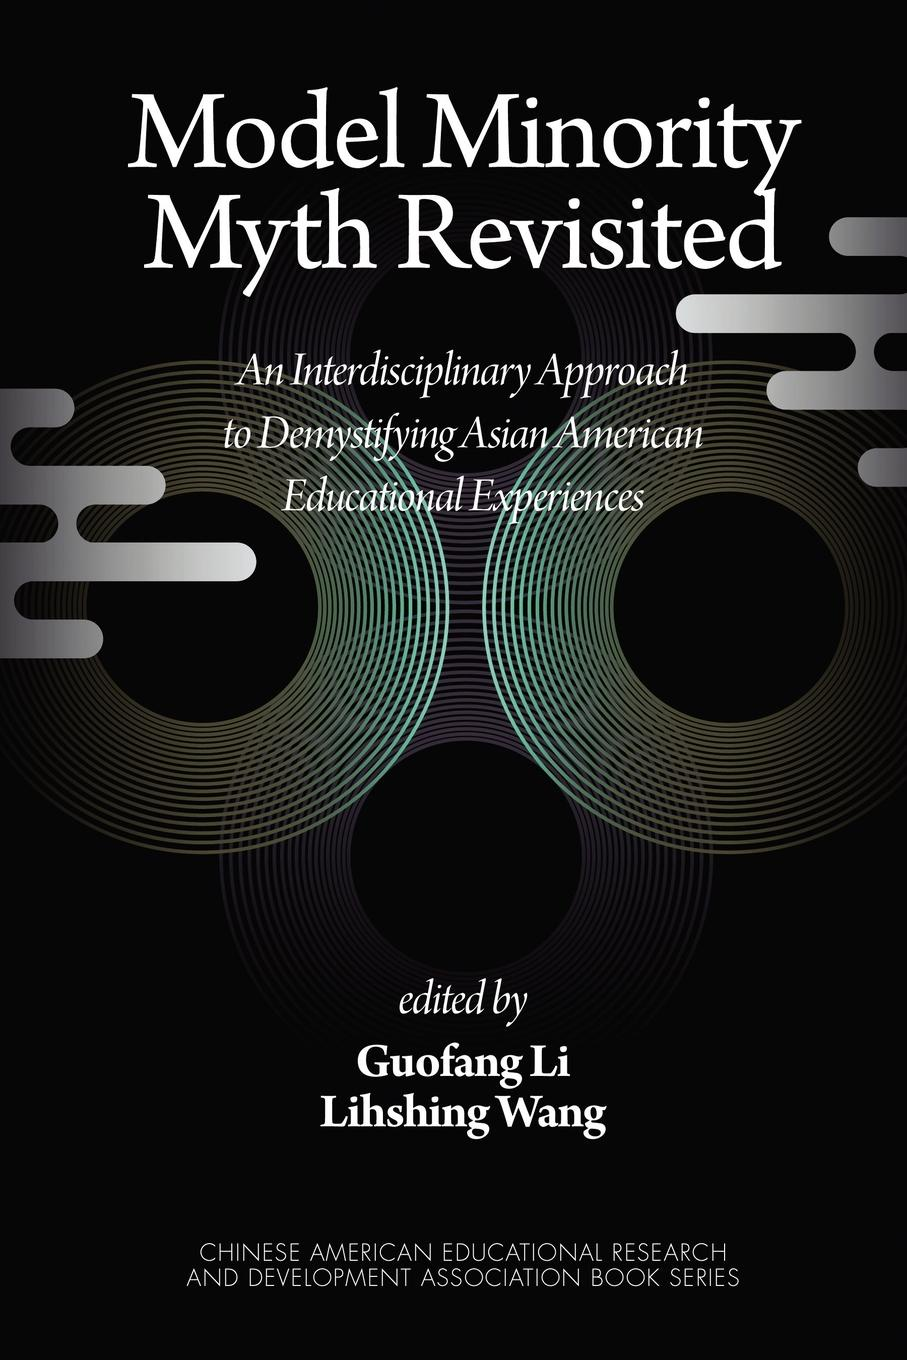 Model Minority Myth Revisited. An Interdisciplinary Approach to Demystifying Asian American Educational Experiences (PB) zhou yi the book of change the chinese culture book in chinese edition